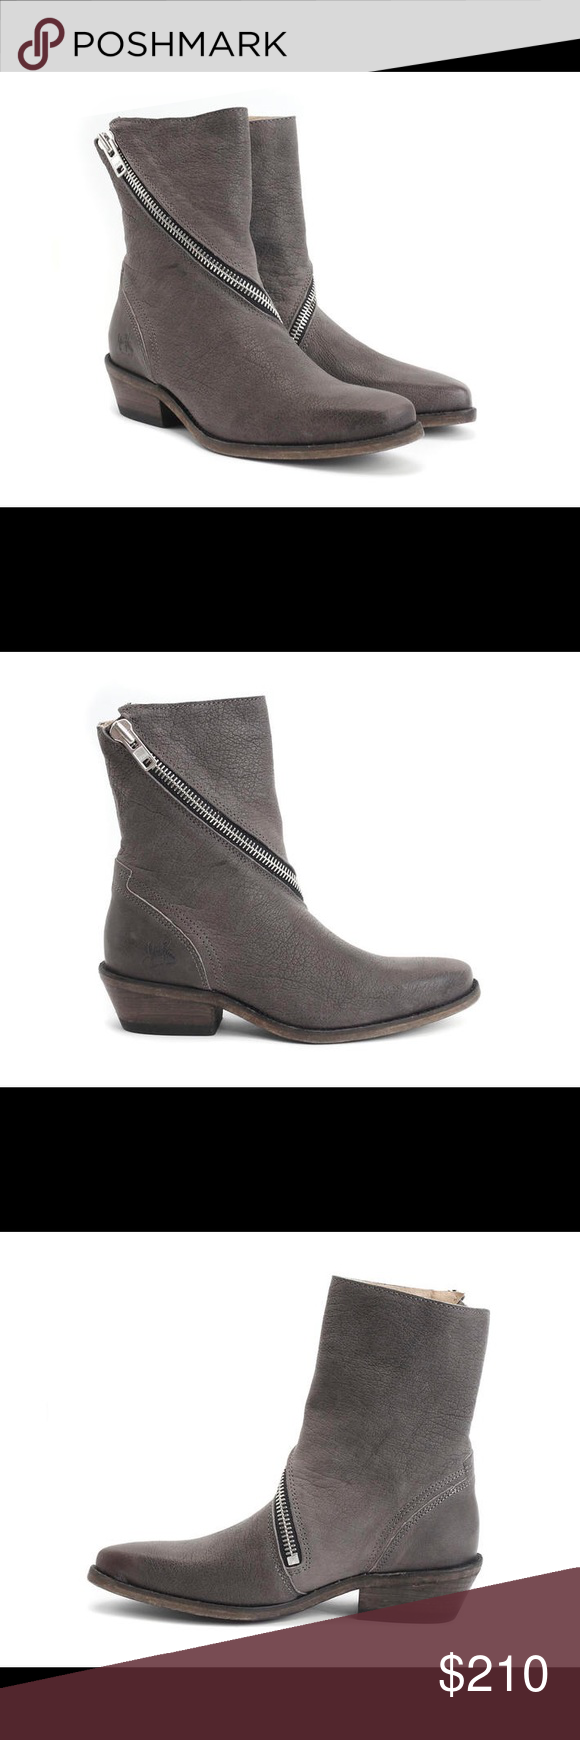 John Fluevog grey ankle zipper boots Brand new in box, with dust bag! John Fluevog Shoes Ankle Boots & Booties